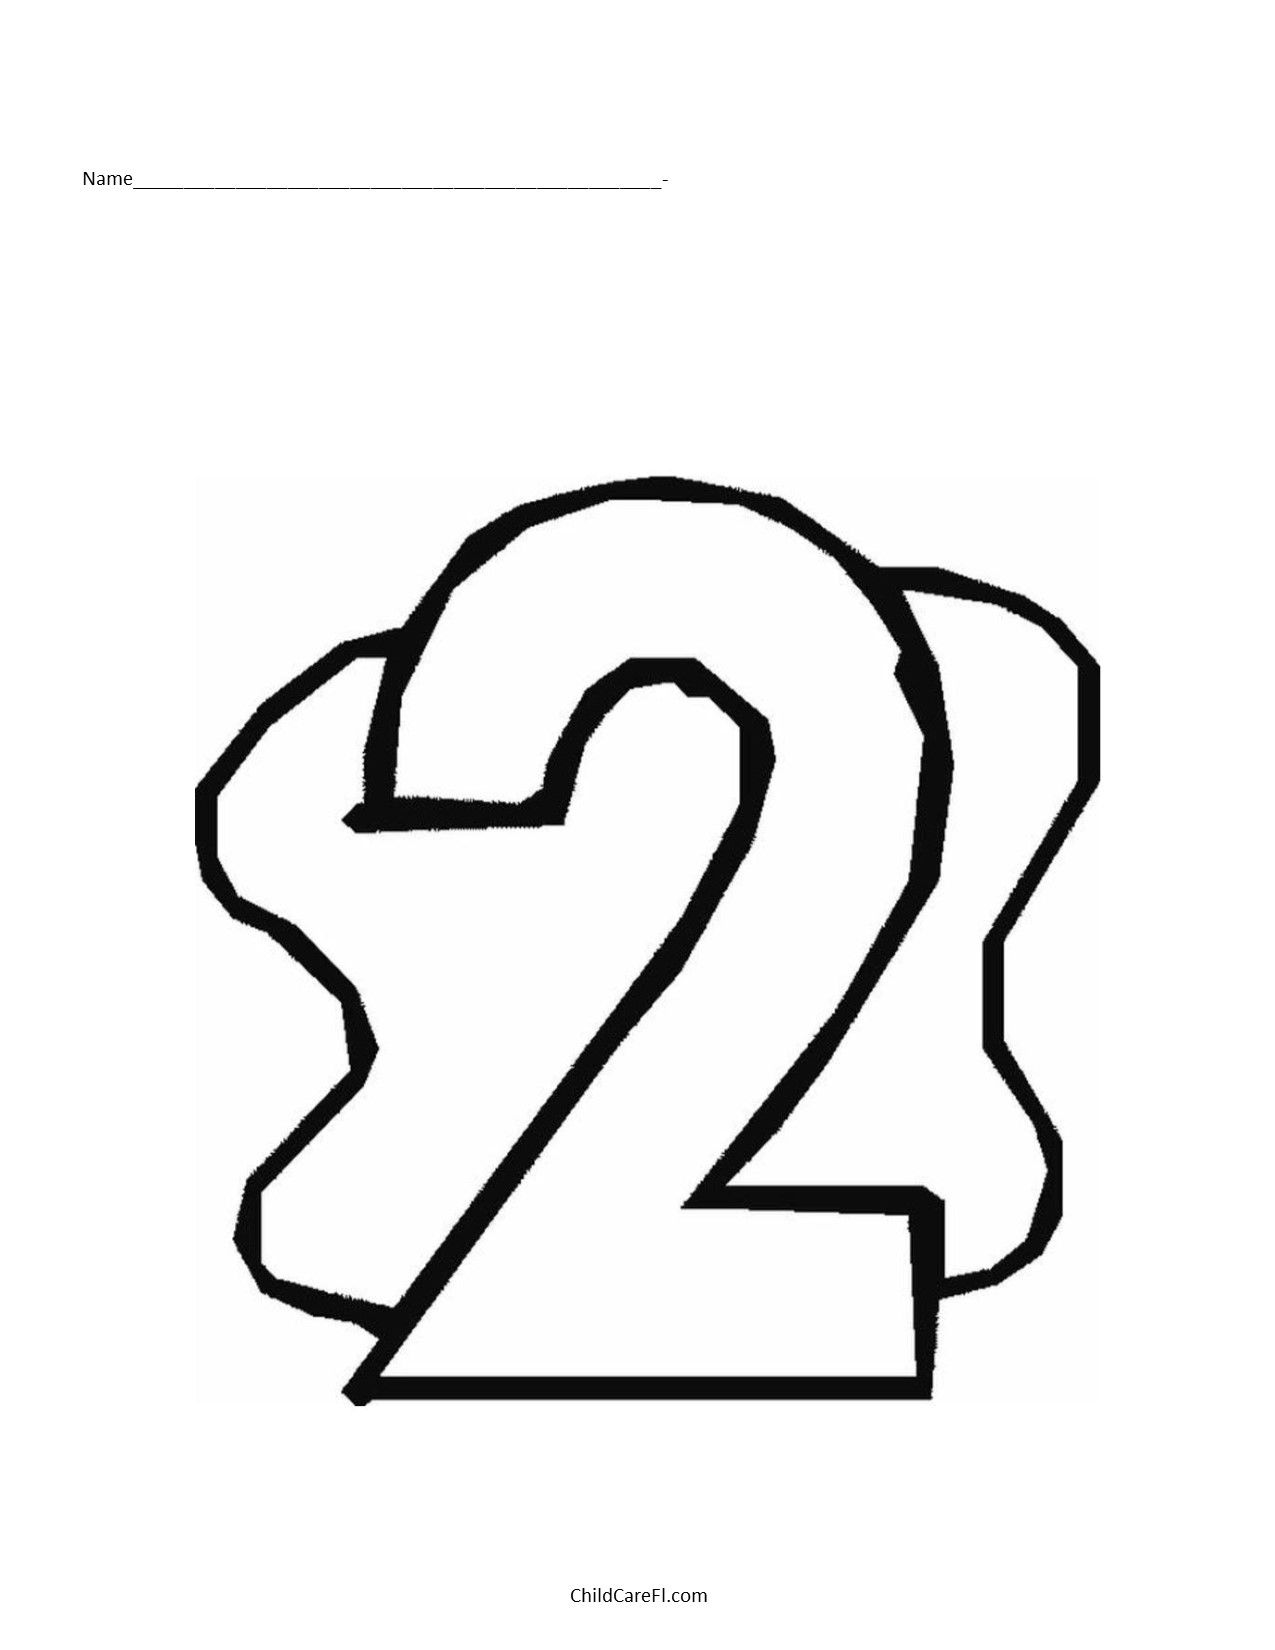 Number 2 Coloring Pages Color Number 2